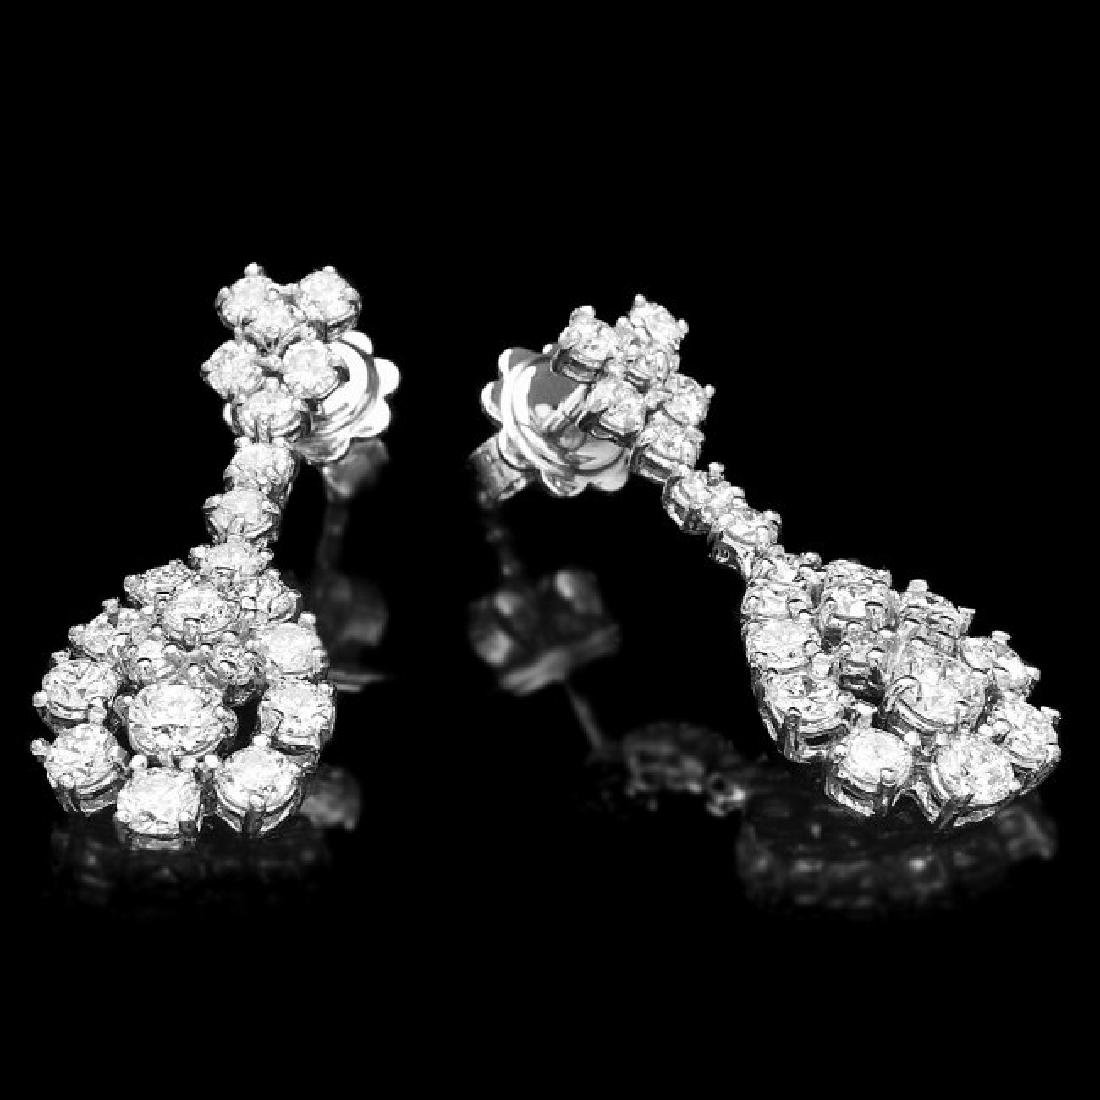 14k White Gold 2.85ct Diamond Earrings - 2